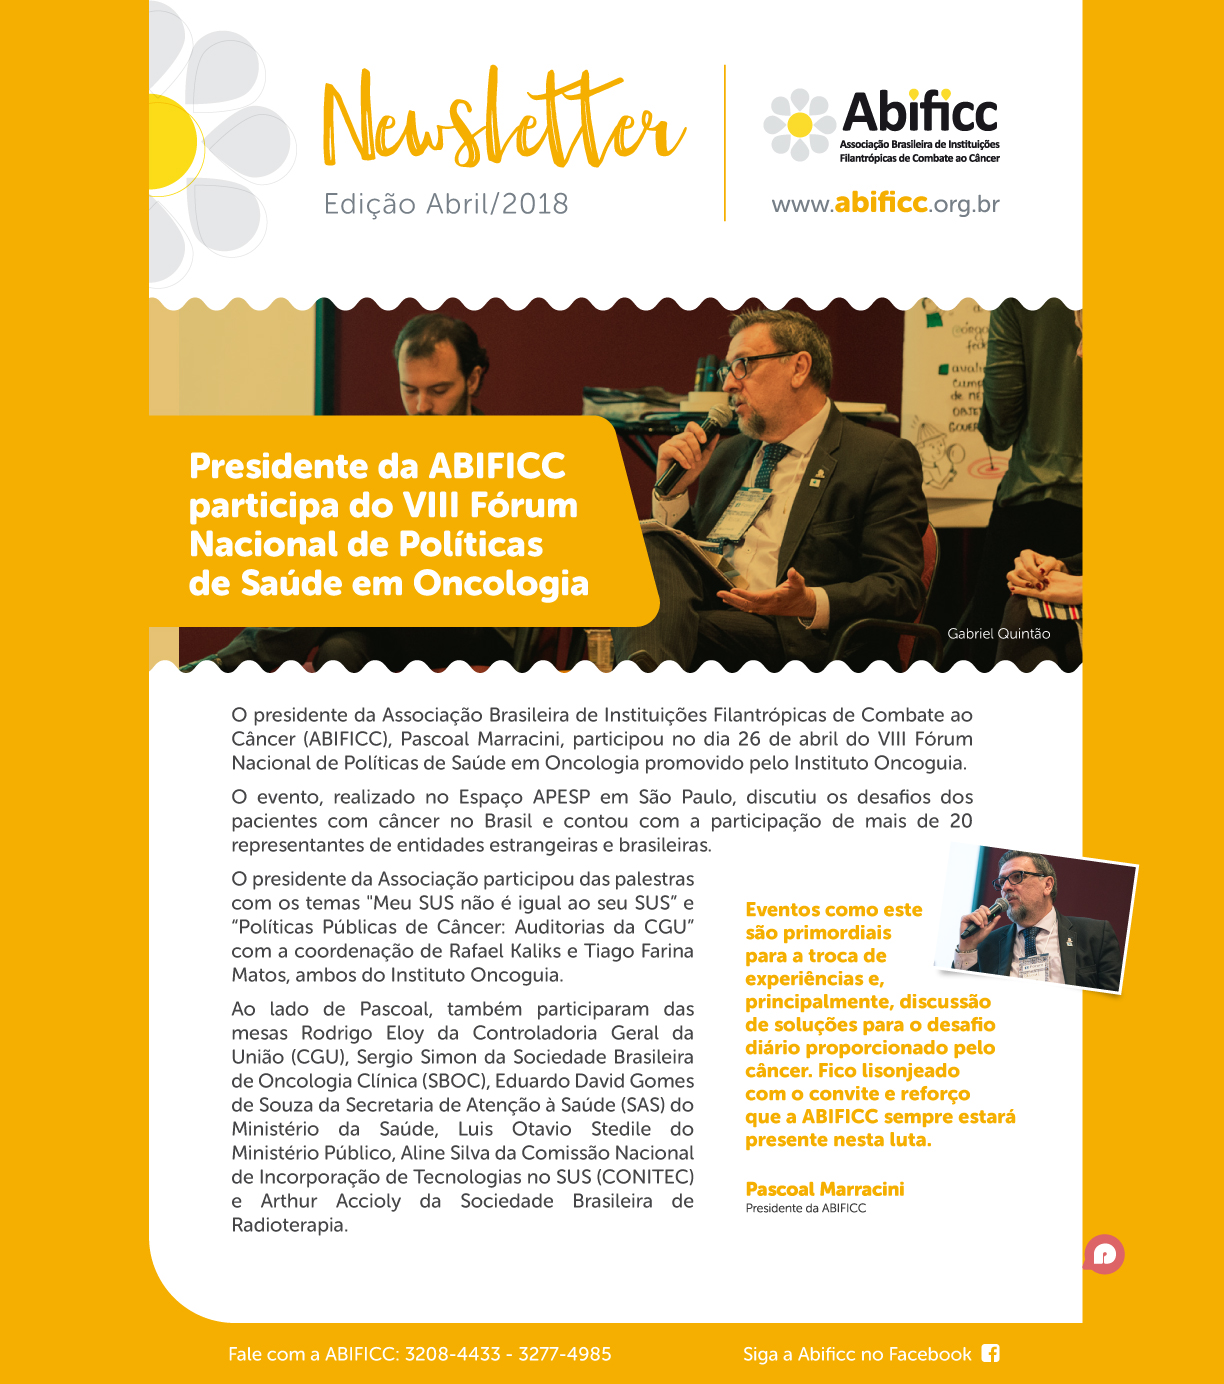 abificc_newsletter_1-1_abr_2018